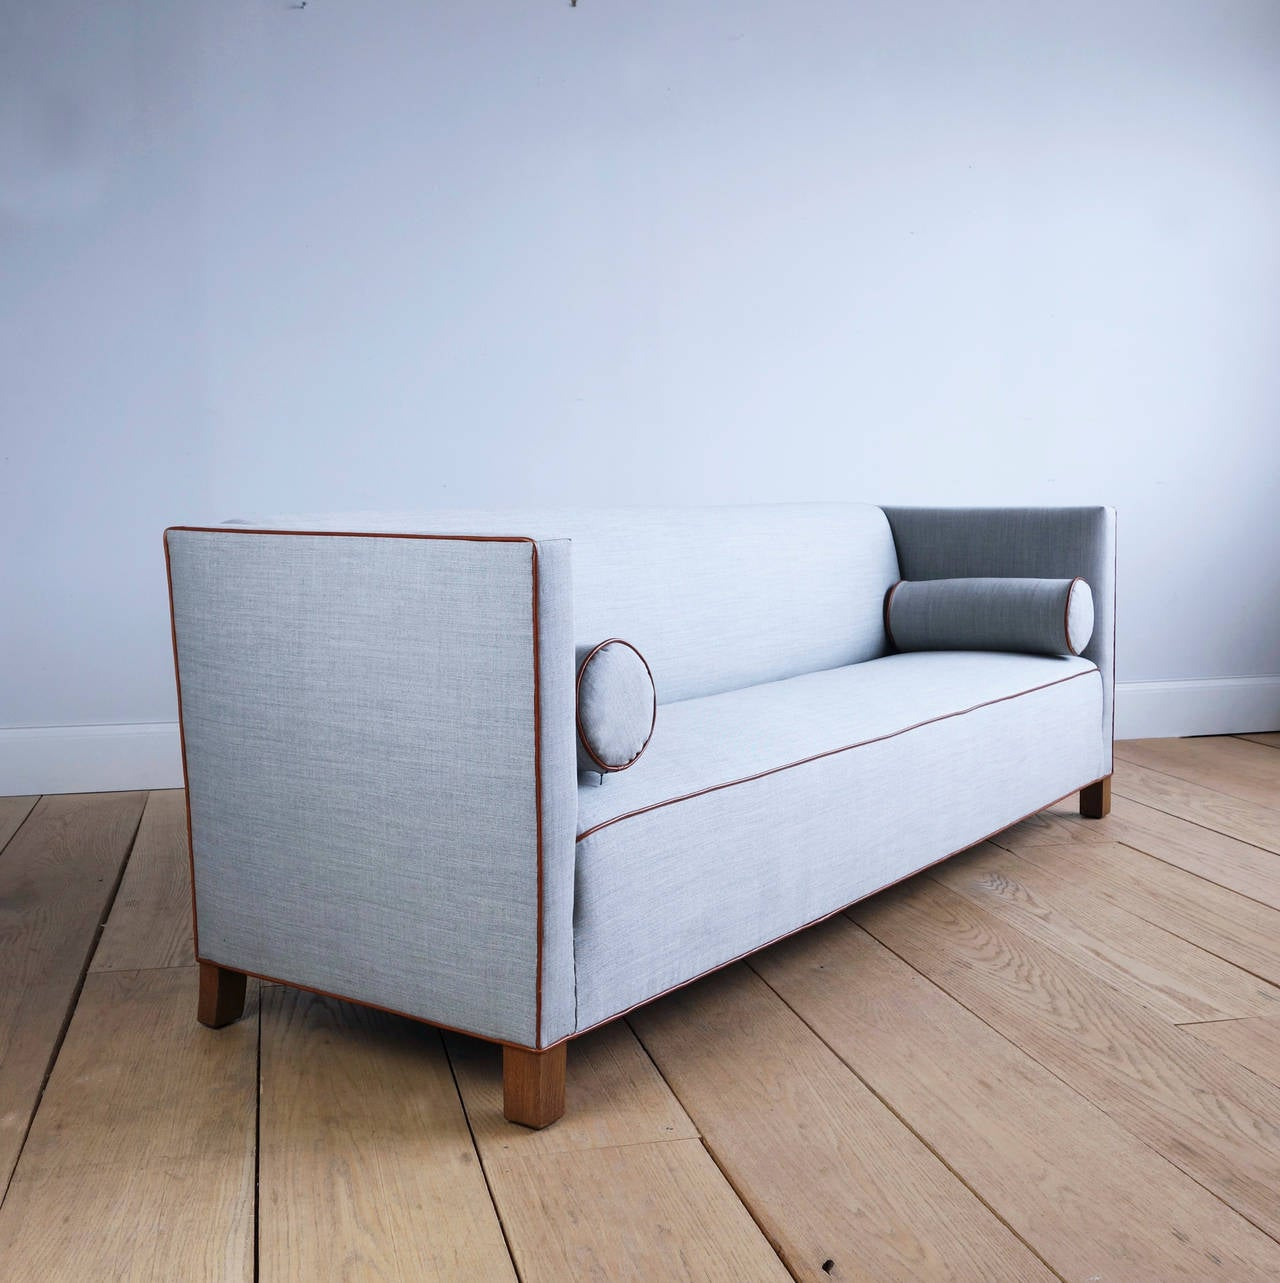 Long Danish 1930S Sofa Upholstered In Wool And Leather At Regarding 1930S Sofas (View 9 of 15)